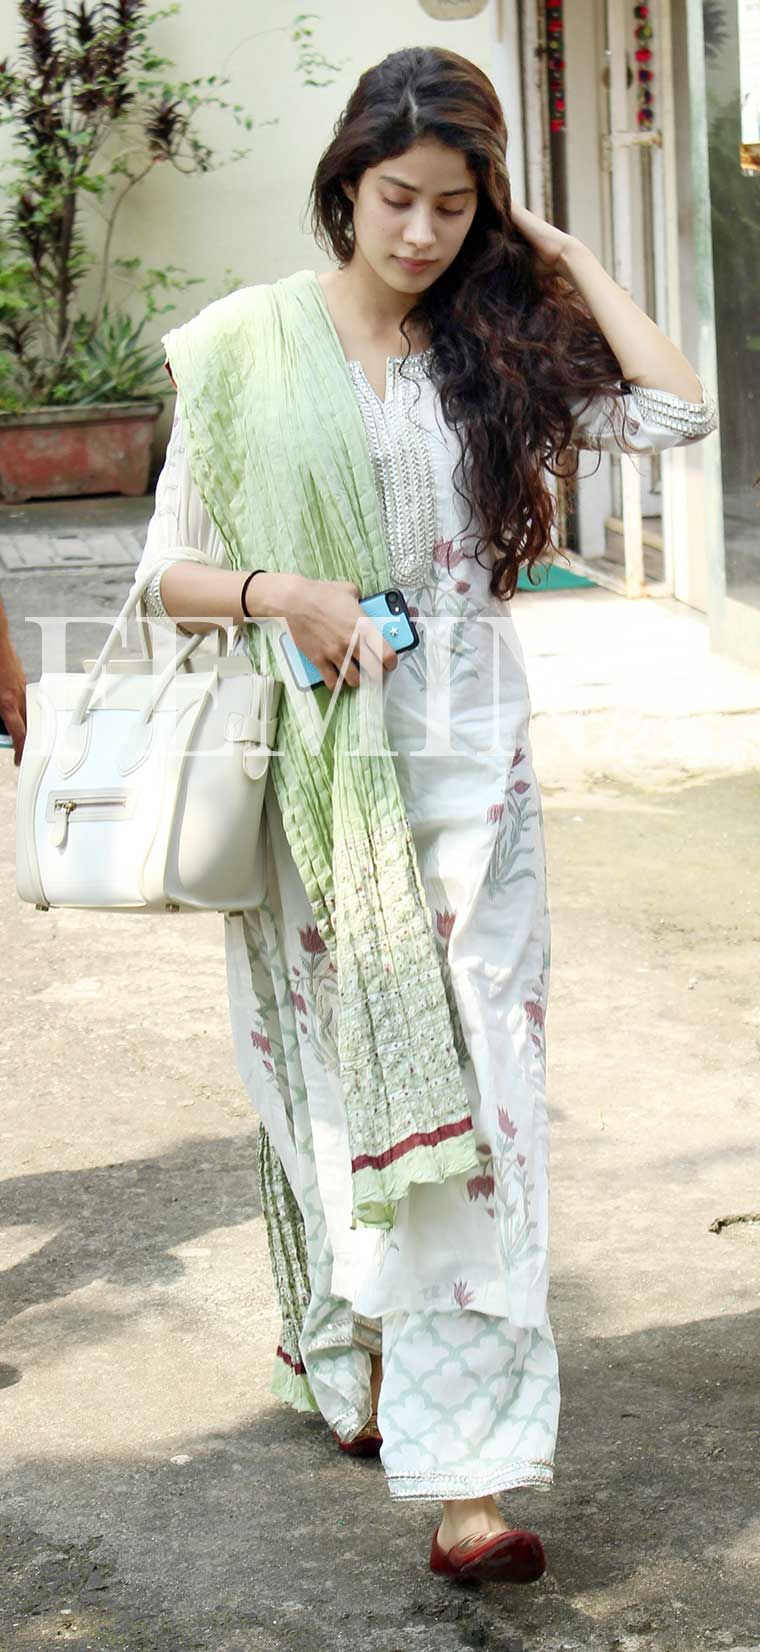 Get the look celeb pretty in prints new photo